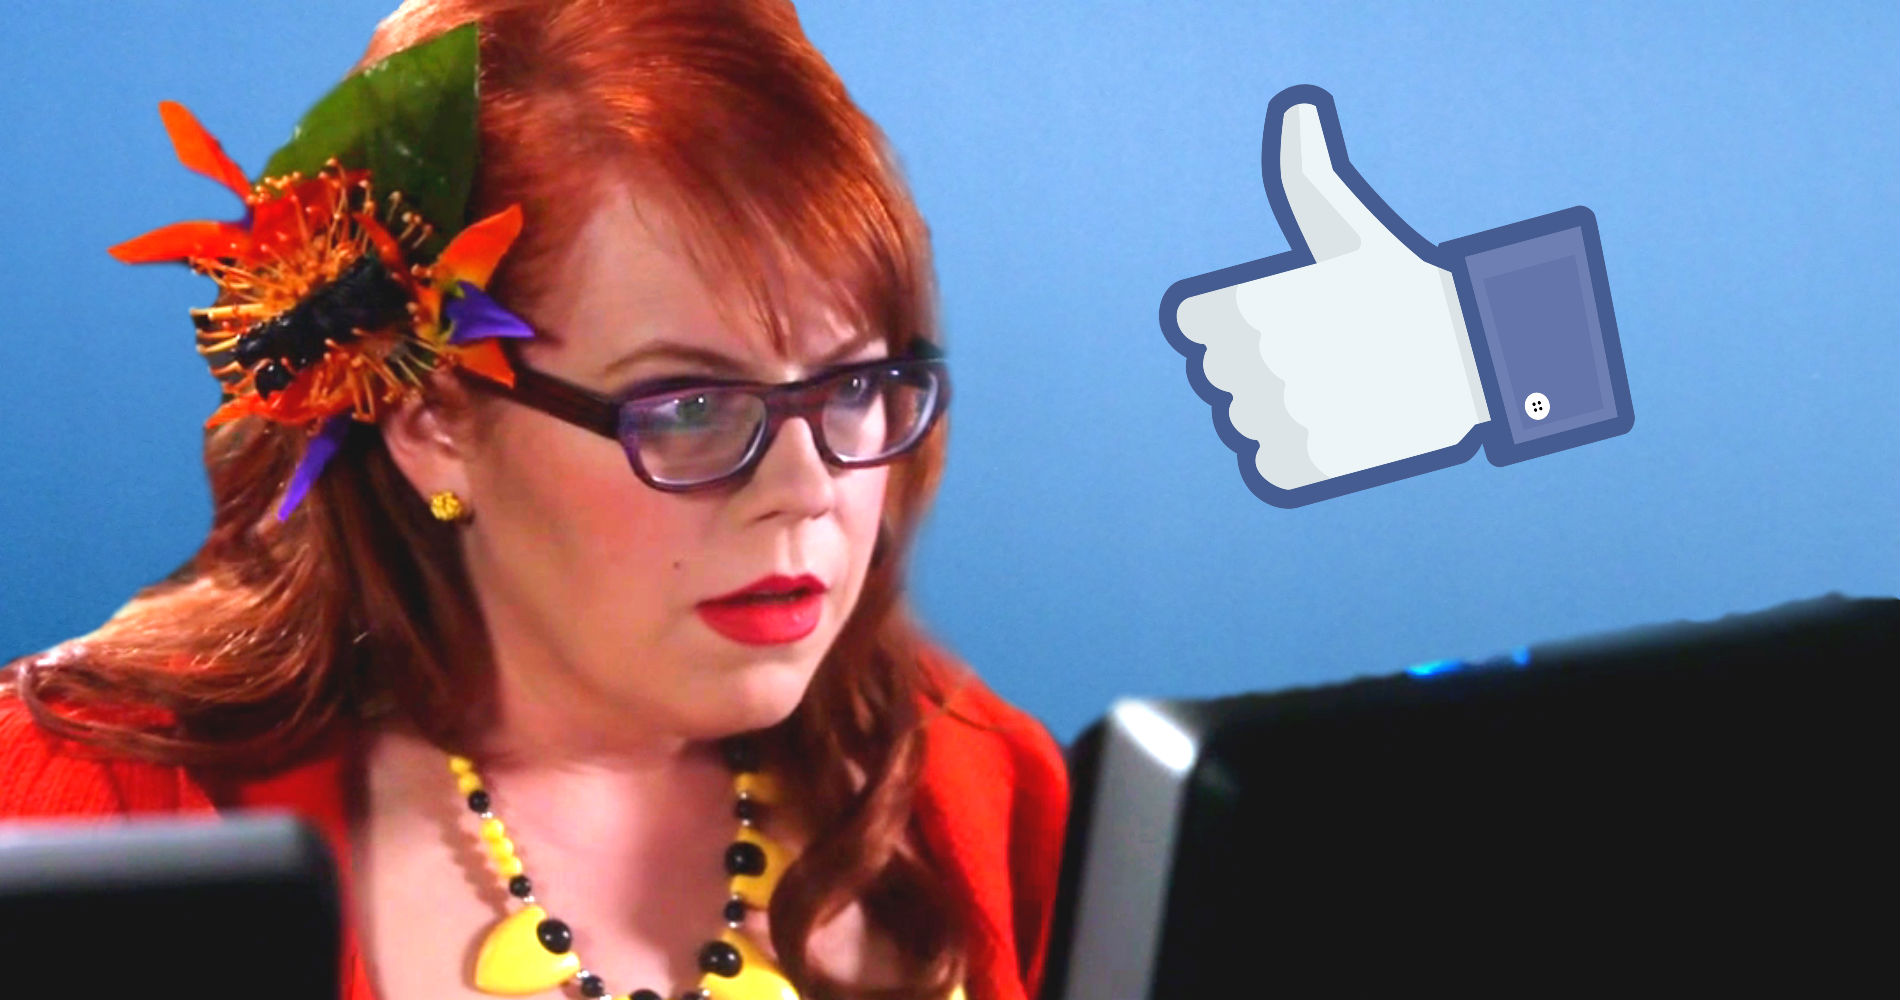 facebook, red head, criminal minds, computer, hs